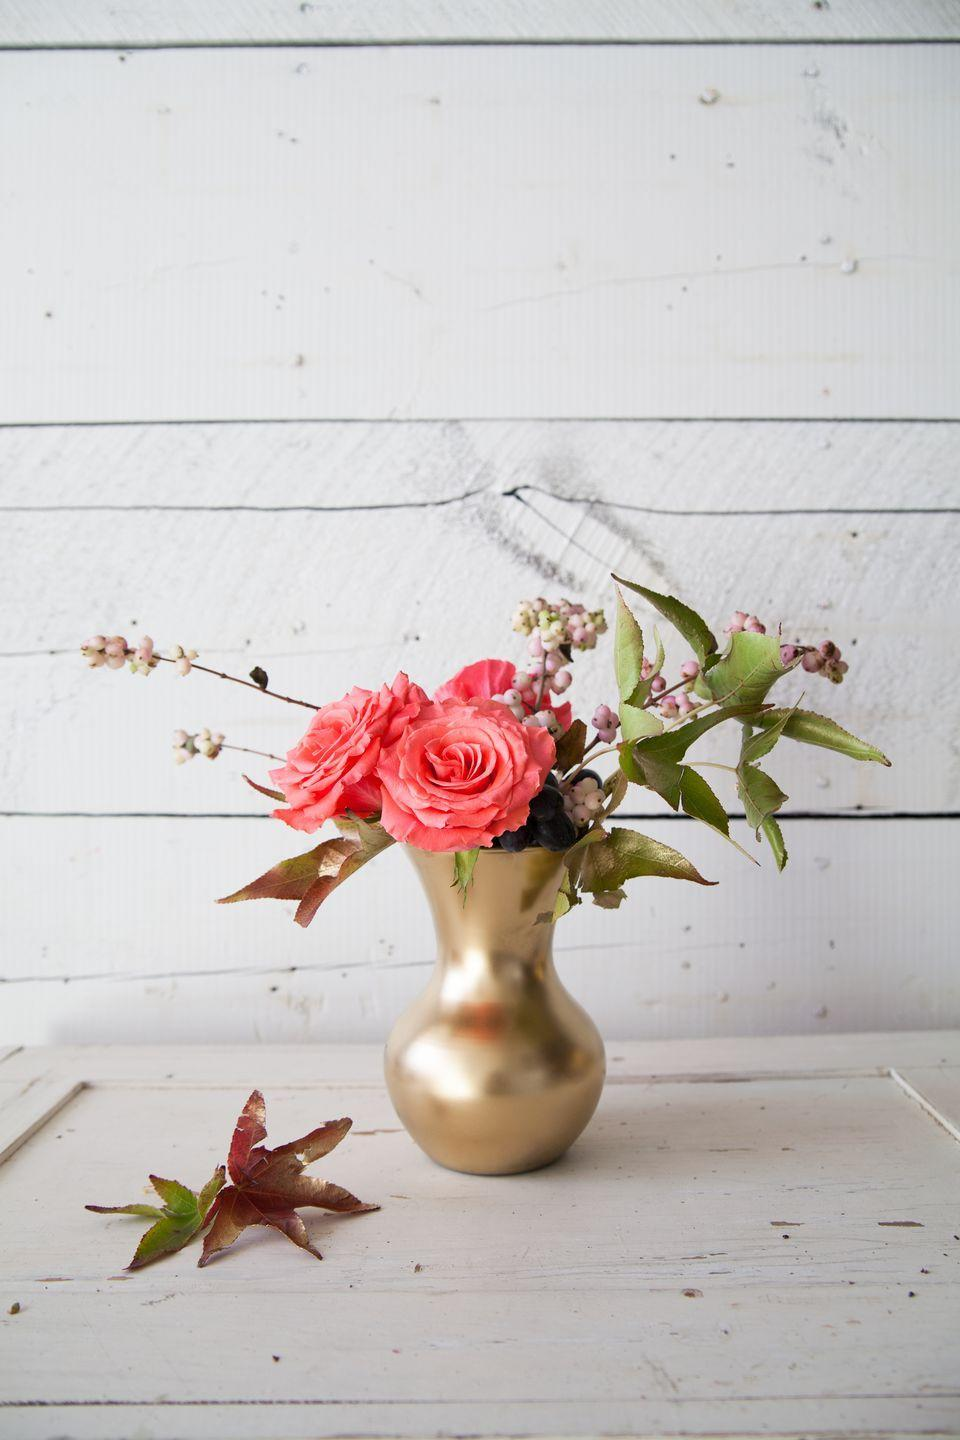 """<p>In this arrangement by <a href=""""http://www.themakerista.com/fresh-fall-florals-on-budget/"""" rel=""""nofollow noopener"""" target=""""_blank"""" data-ylk=""""slk:The Makerista"""" class=""""link rapid-noclick-resp"""">The Makerista</a>, sweetgum leaves have been gilded with <a href=""""https://www.elledecor.com/design-decorate/room-ideas/a7500/how-to-decorate-with-metallics/"""" rel=""""nofollow noopener"""" target=""""_blank"""" data-ylk=""""slk:metallic gold spray paint"""" class=""""link rapid-noclick-resp"""">metallic gold spray paint</a> and blended with snowberry branches, grapes, and roses.</p>"""